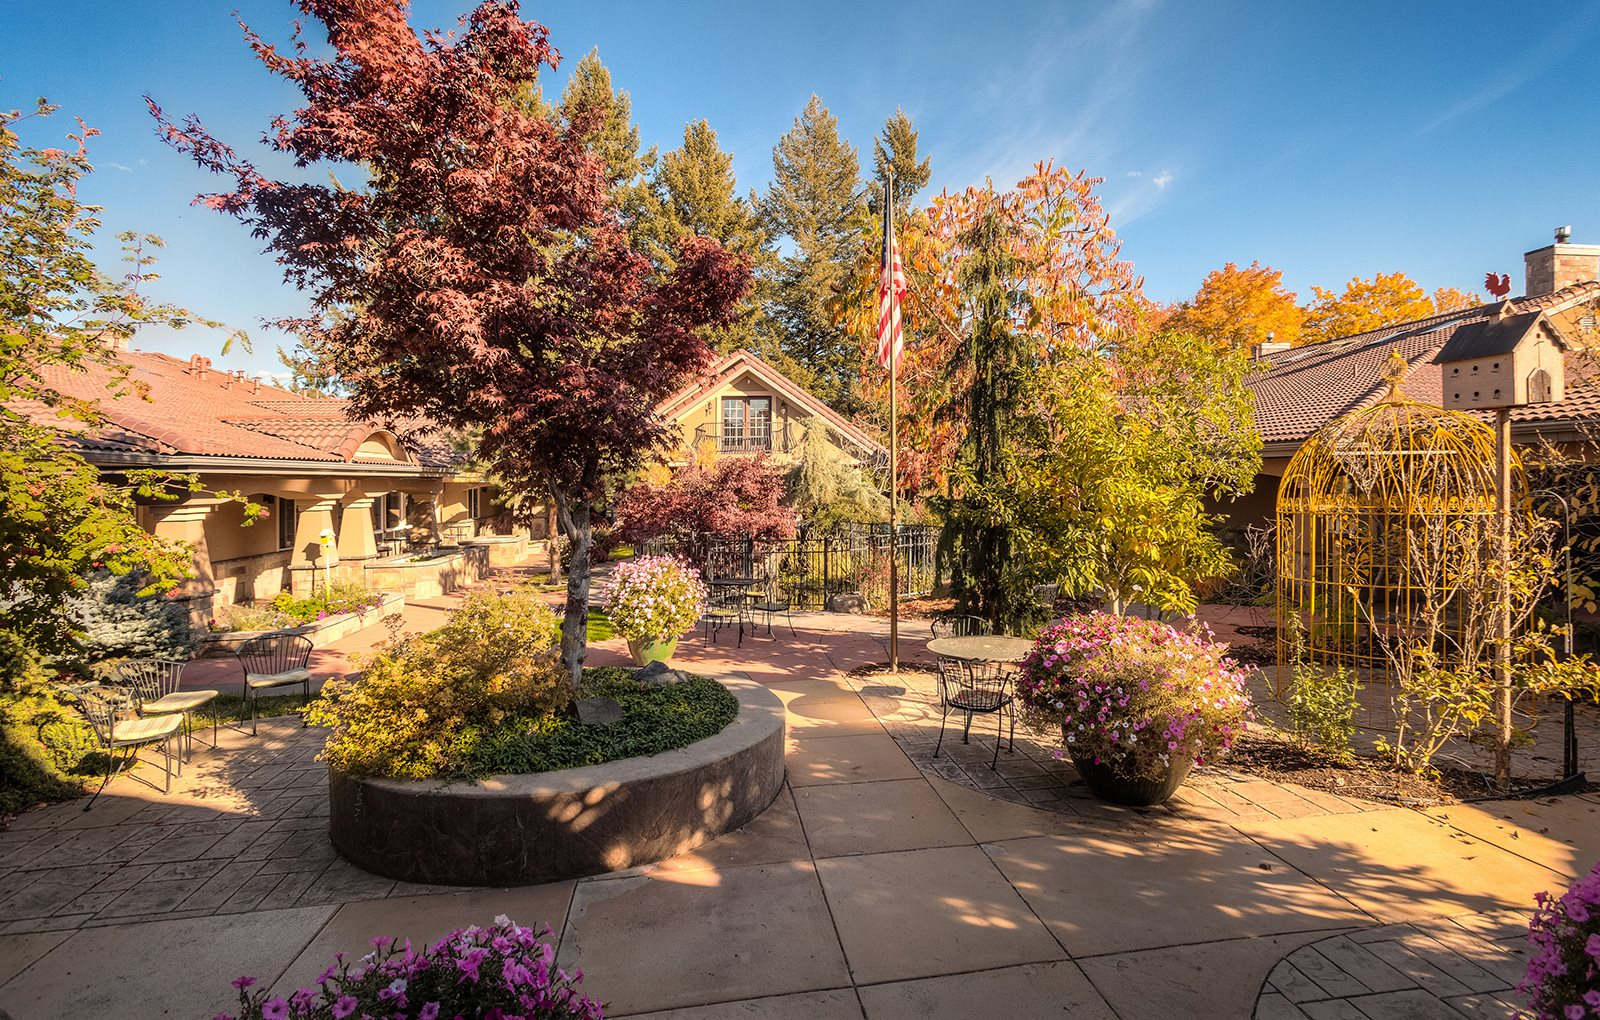 Exquisite Landscaped Courtyard at Courtyard at Coeur d'Alene, Idaho